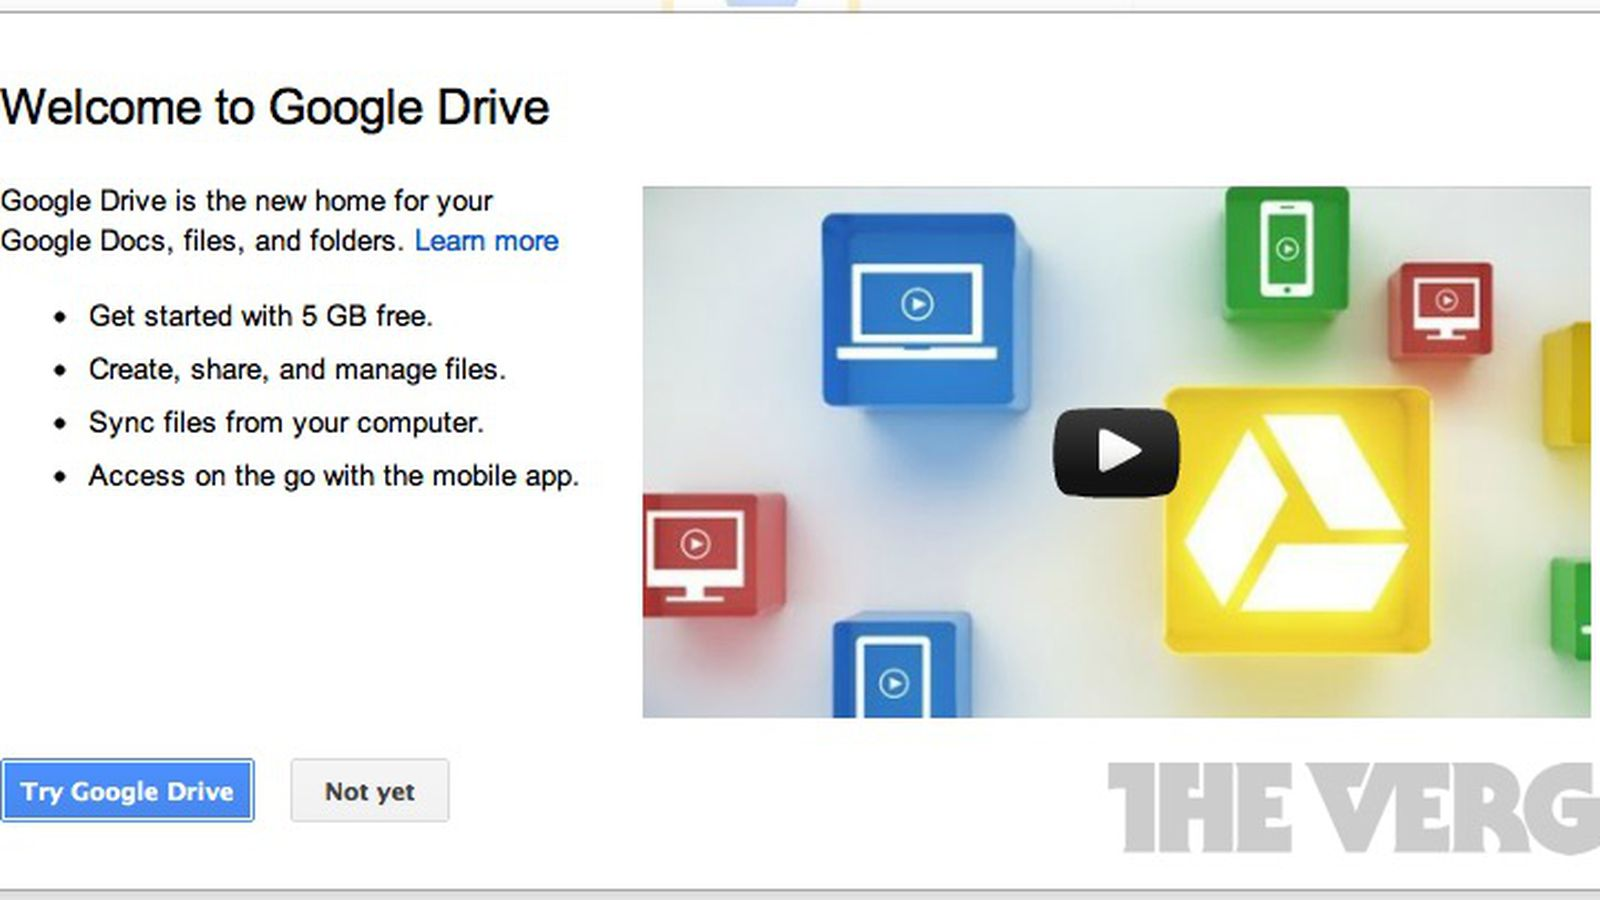 Google Docs now redirects to Google Drive